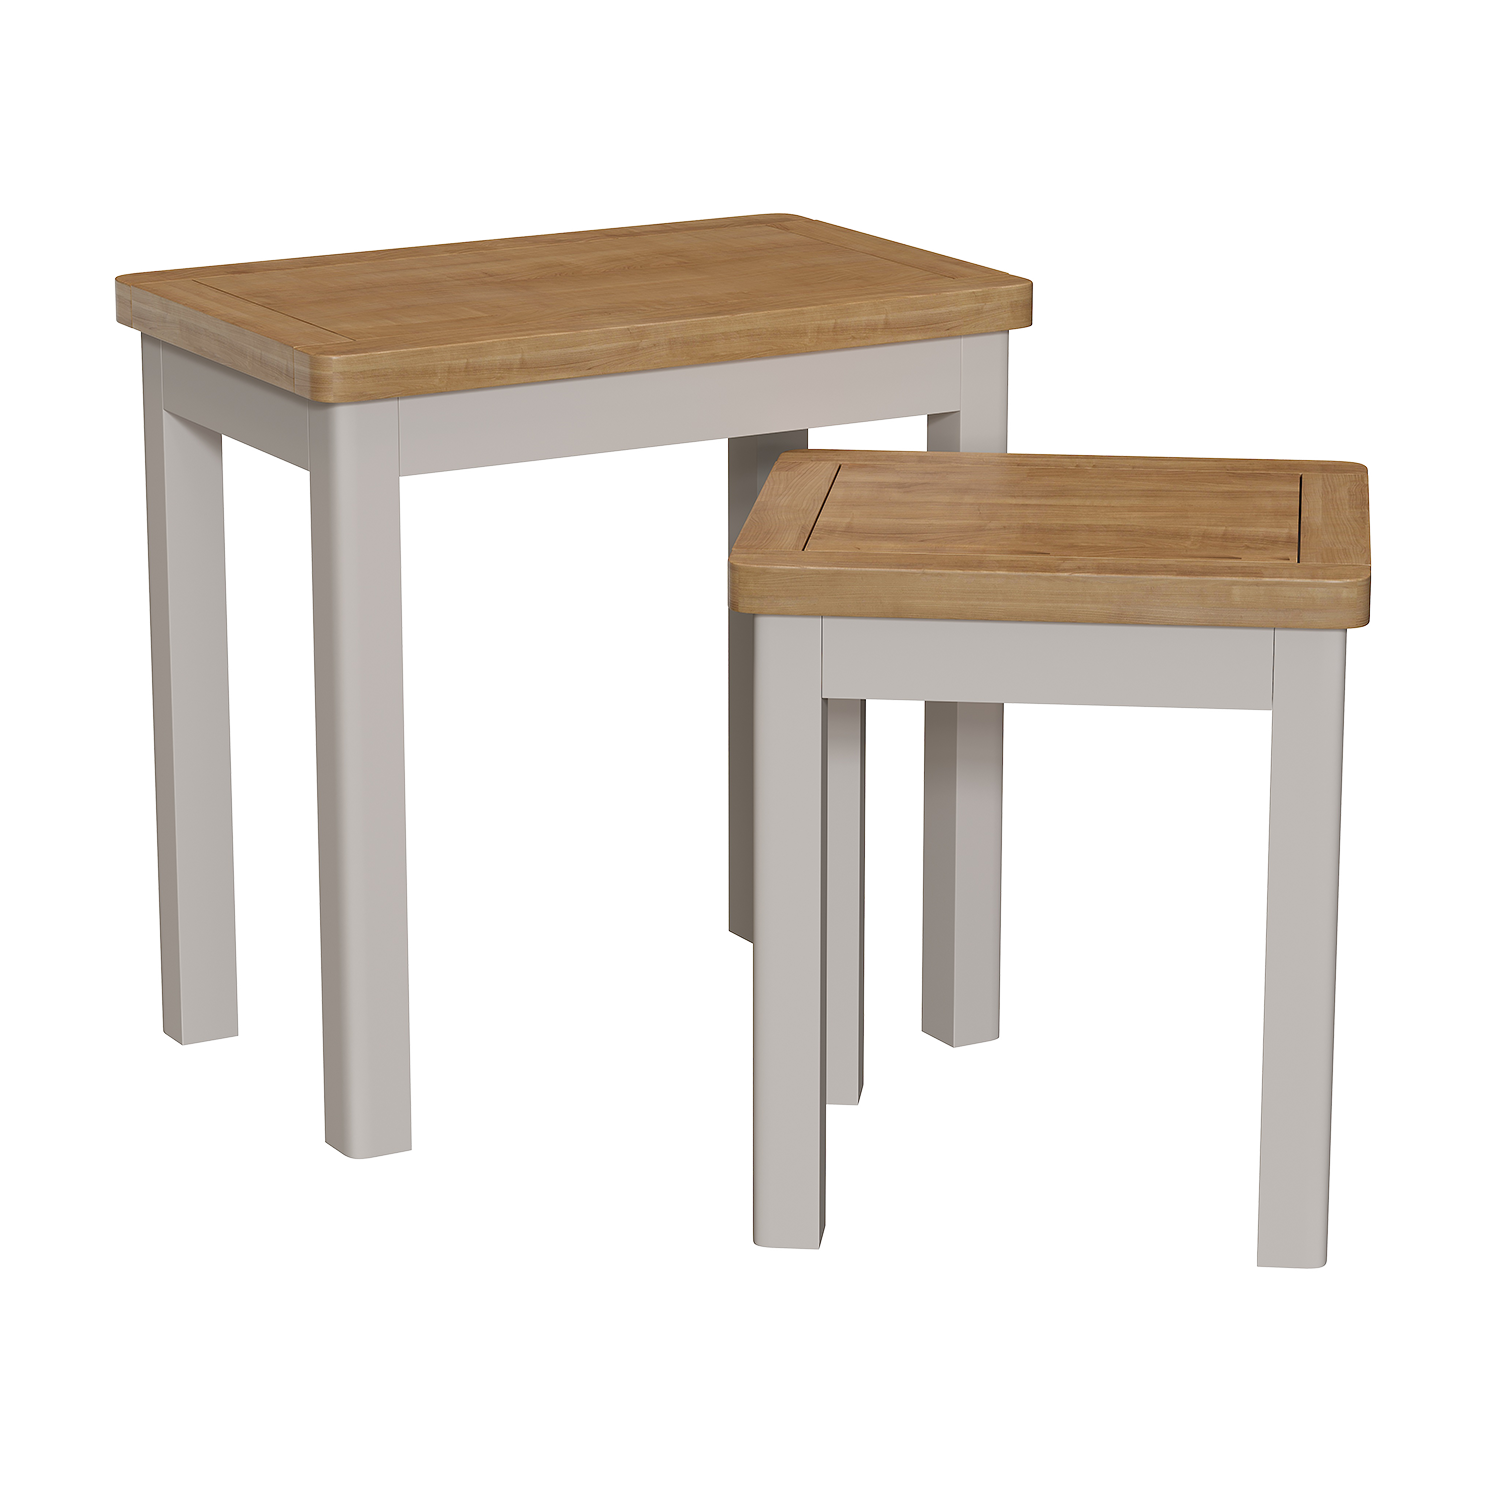 Chiltern Dove Nest of 2 Tables